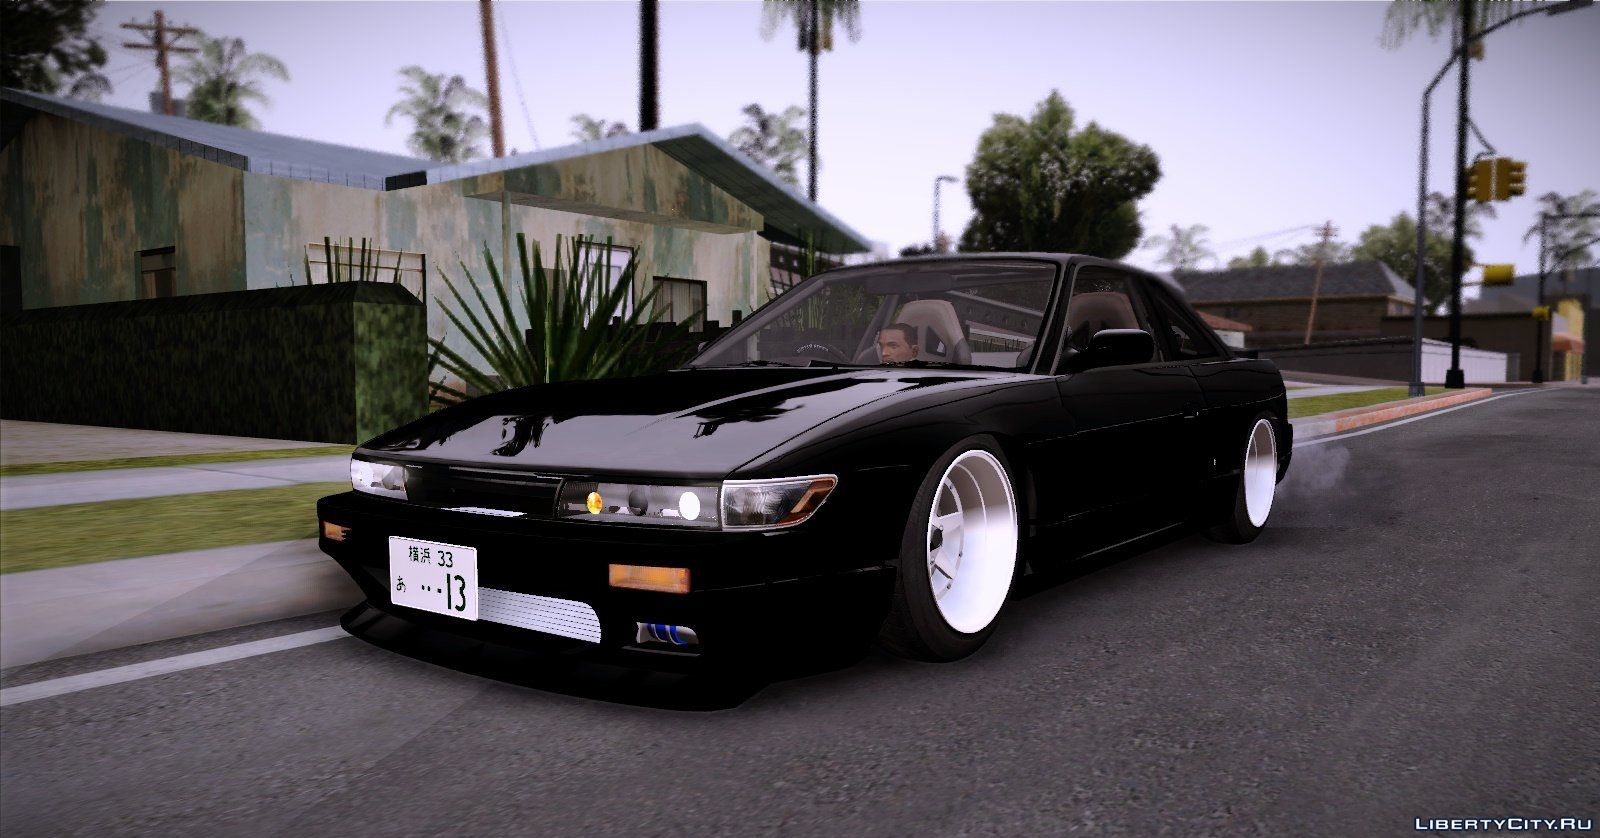 Gta San Andreas Nissan Silvia S15 Tunable Mod Was Downloaded Times Mona Lisa All Cars S13 For With Auto Installation You Can Download Free From On Our Site Sort